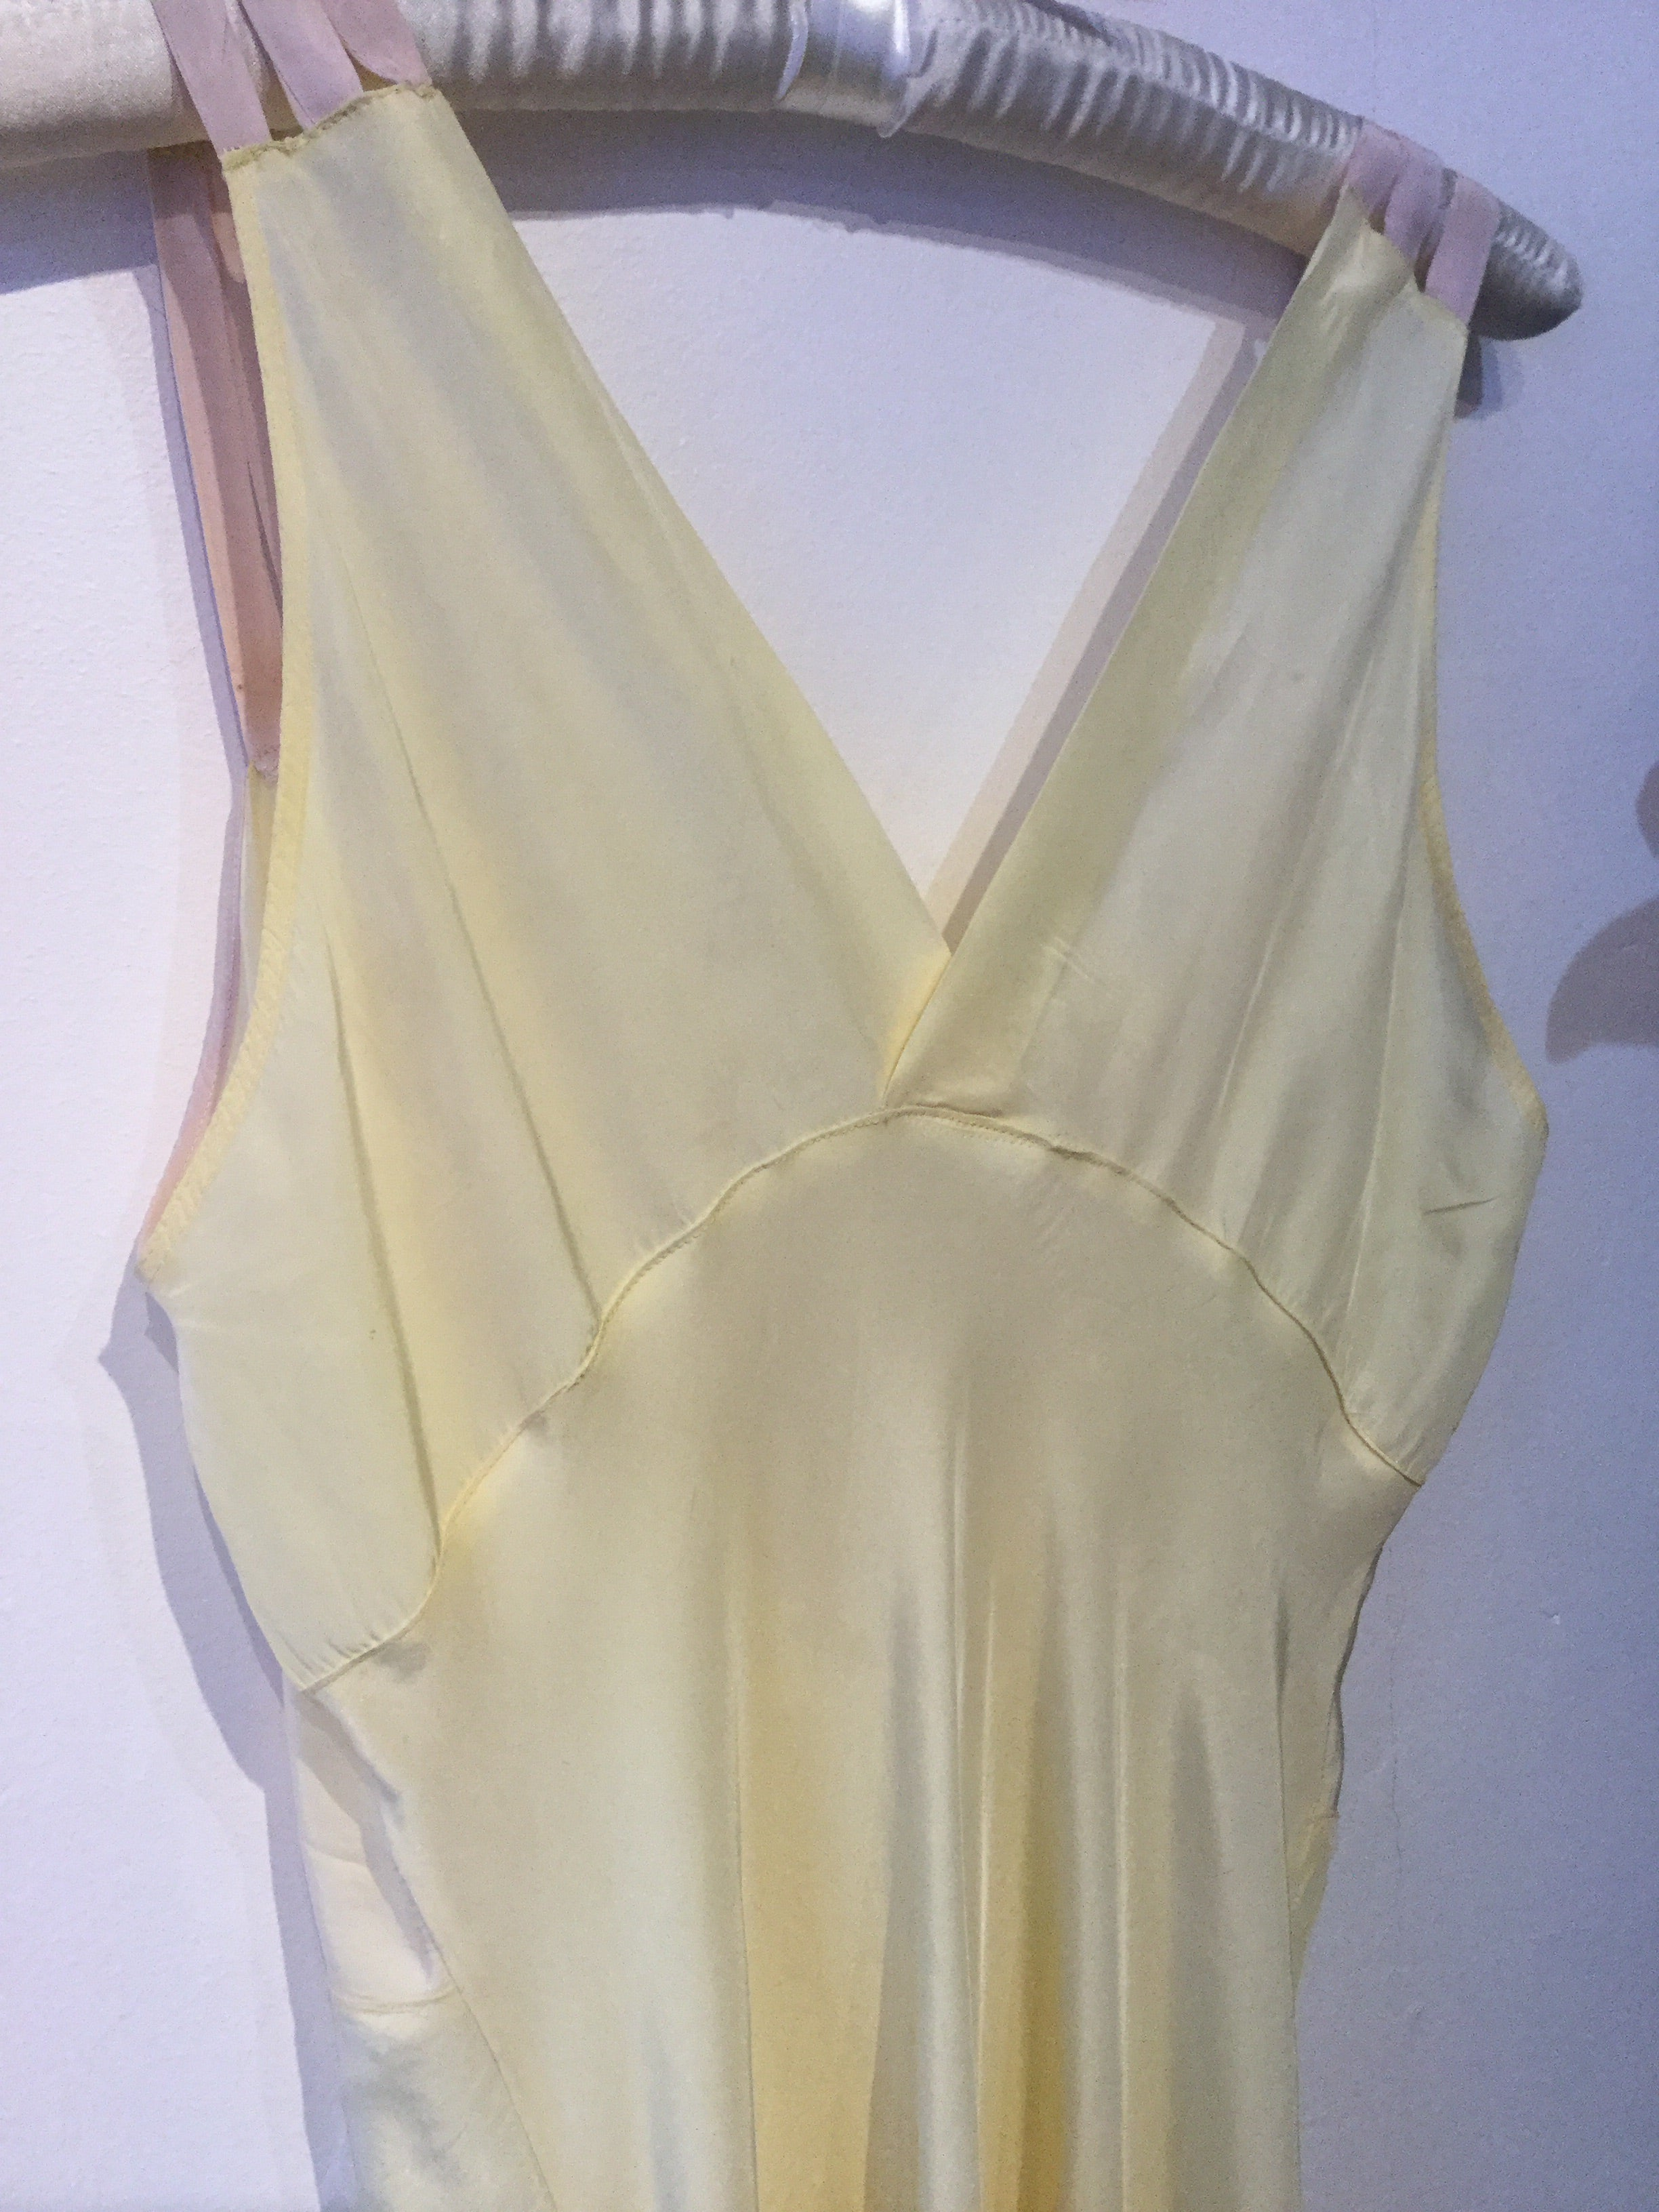 Angelika for Gigi's : Yellow Dress with Mauve Details - M/L Full Bust